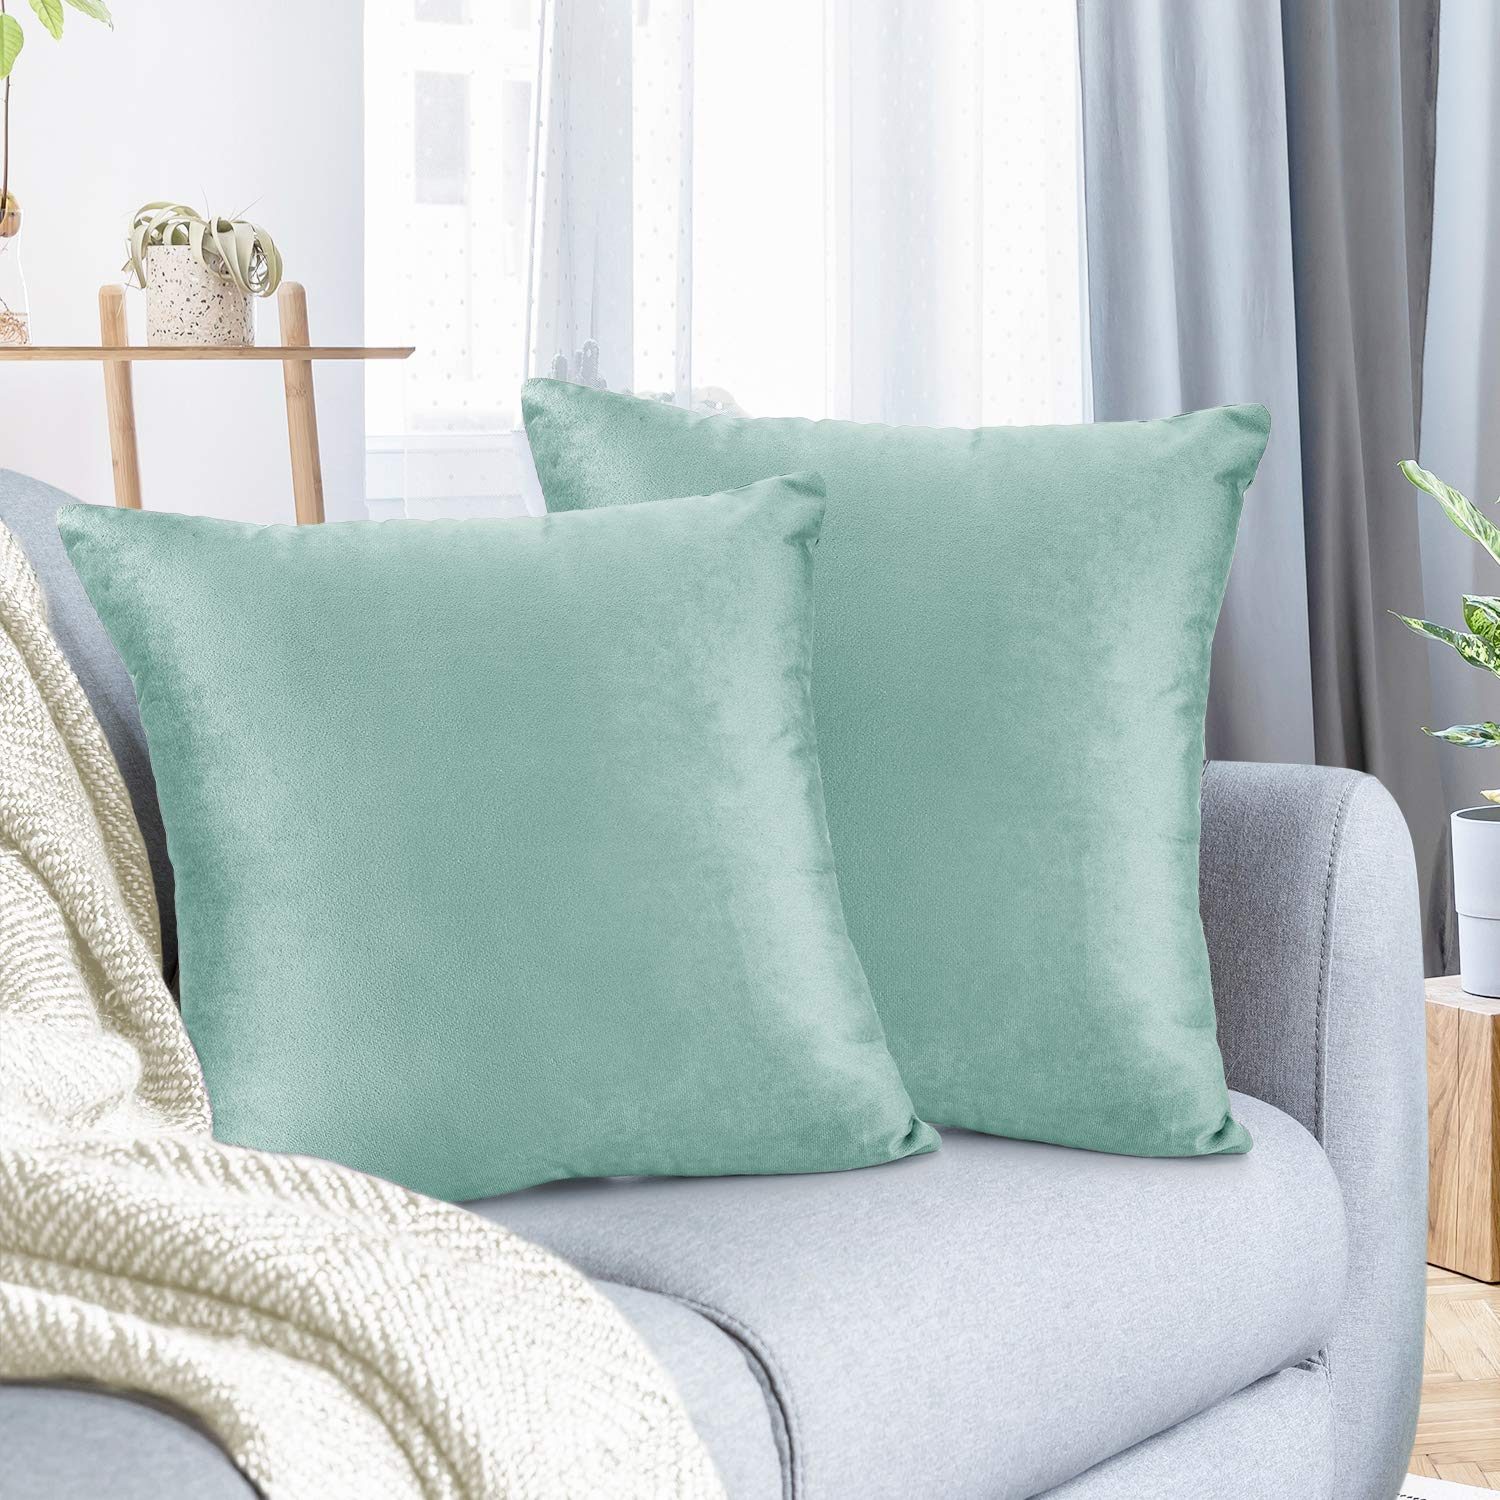 """Nestl Bedding Throw Pillow Cover 26"""" x 26"""" Soft Square Decorative Throw Pillow Covers Cozy Velvet Cushion Case for Sofa Couch Bedroom, Set of 2, Mint"""